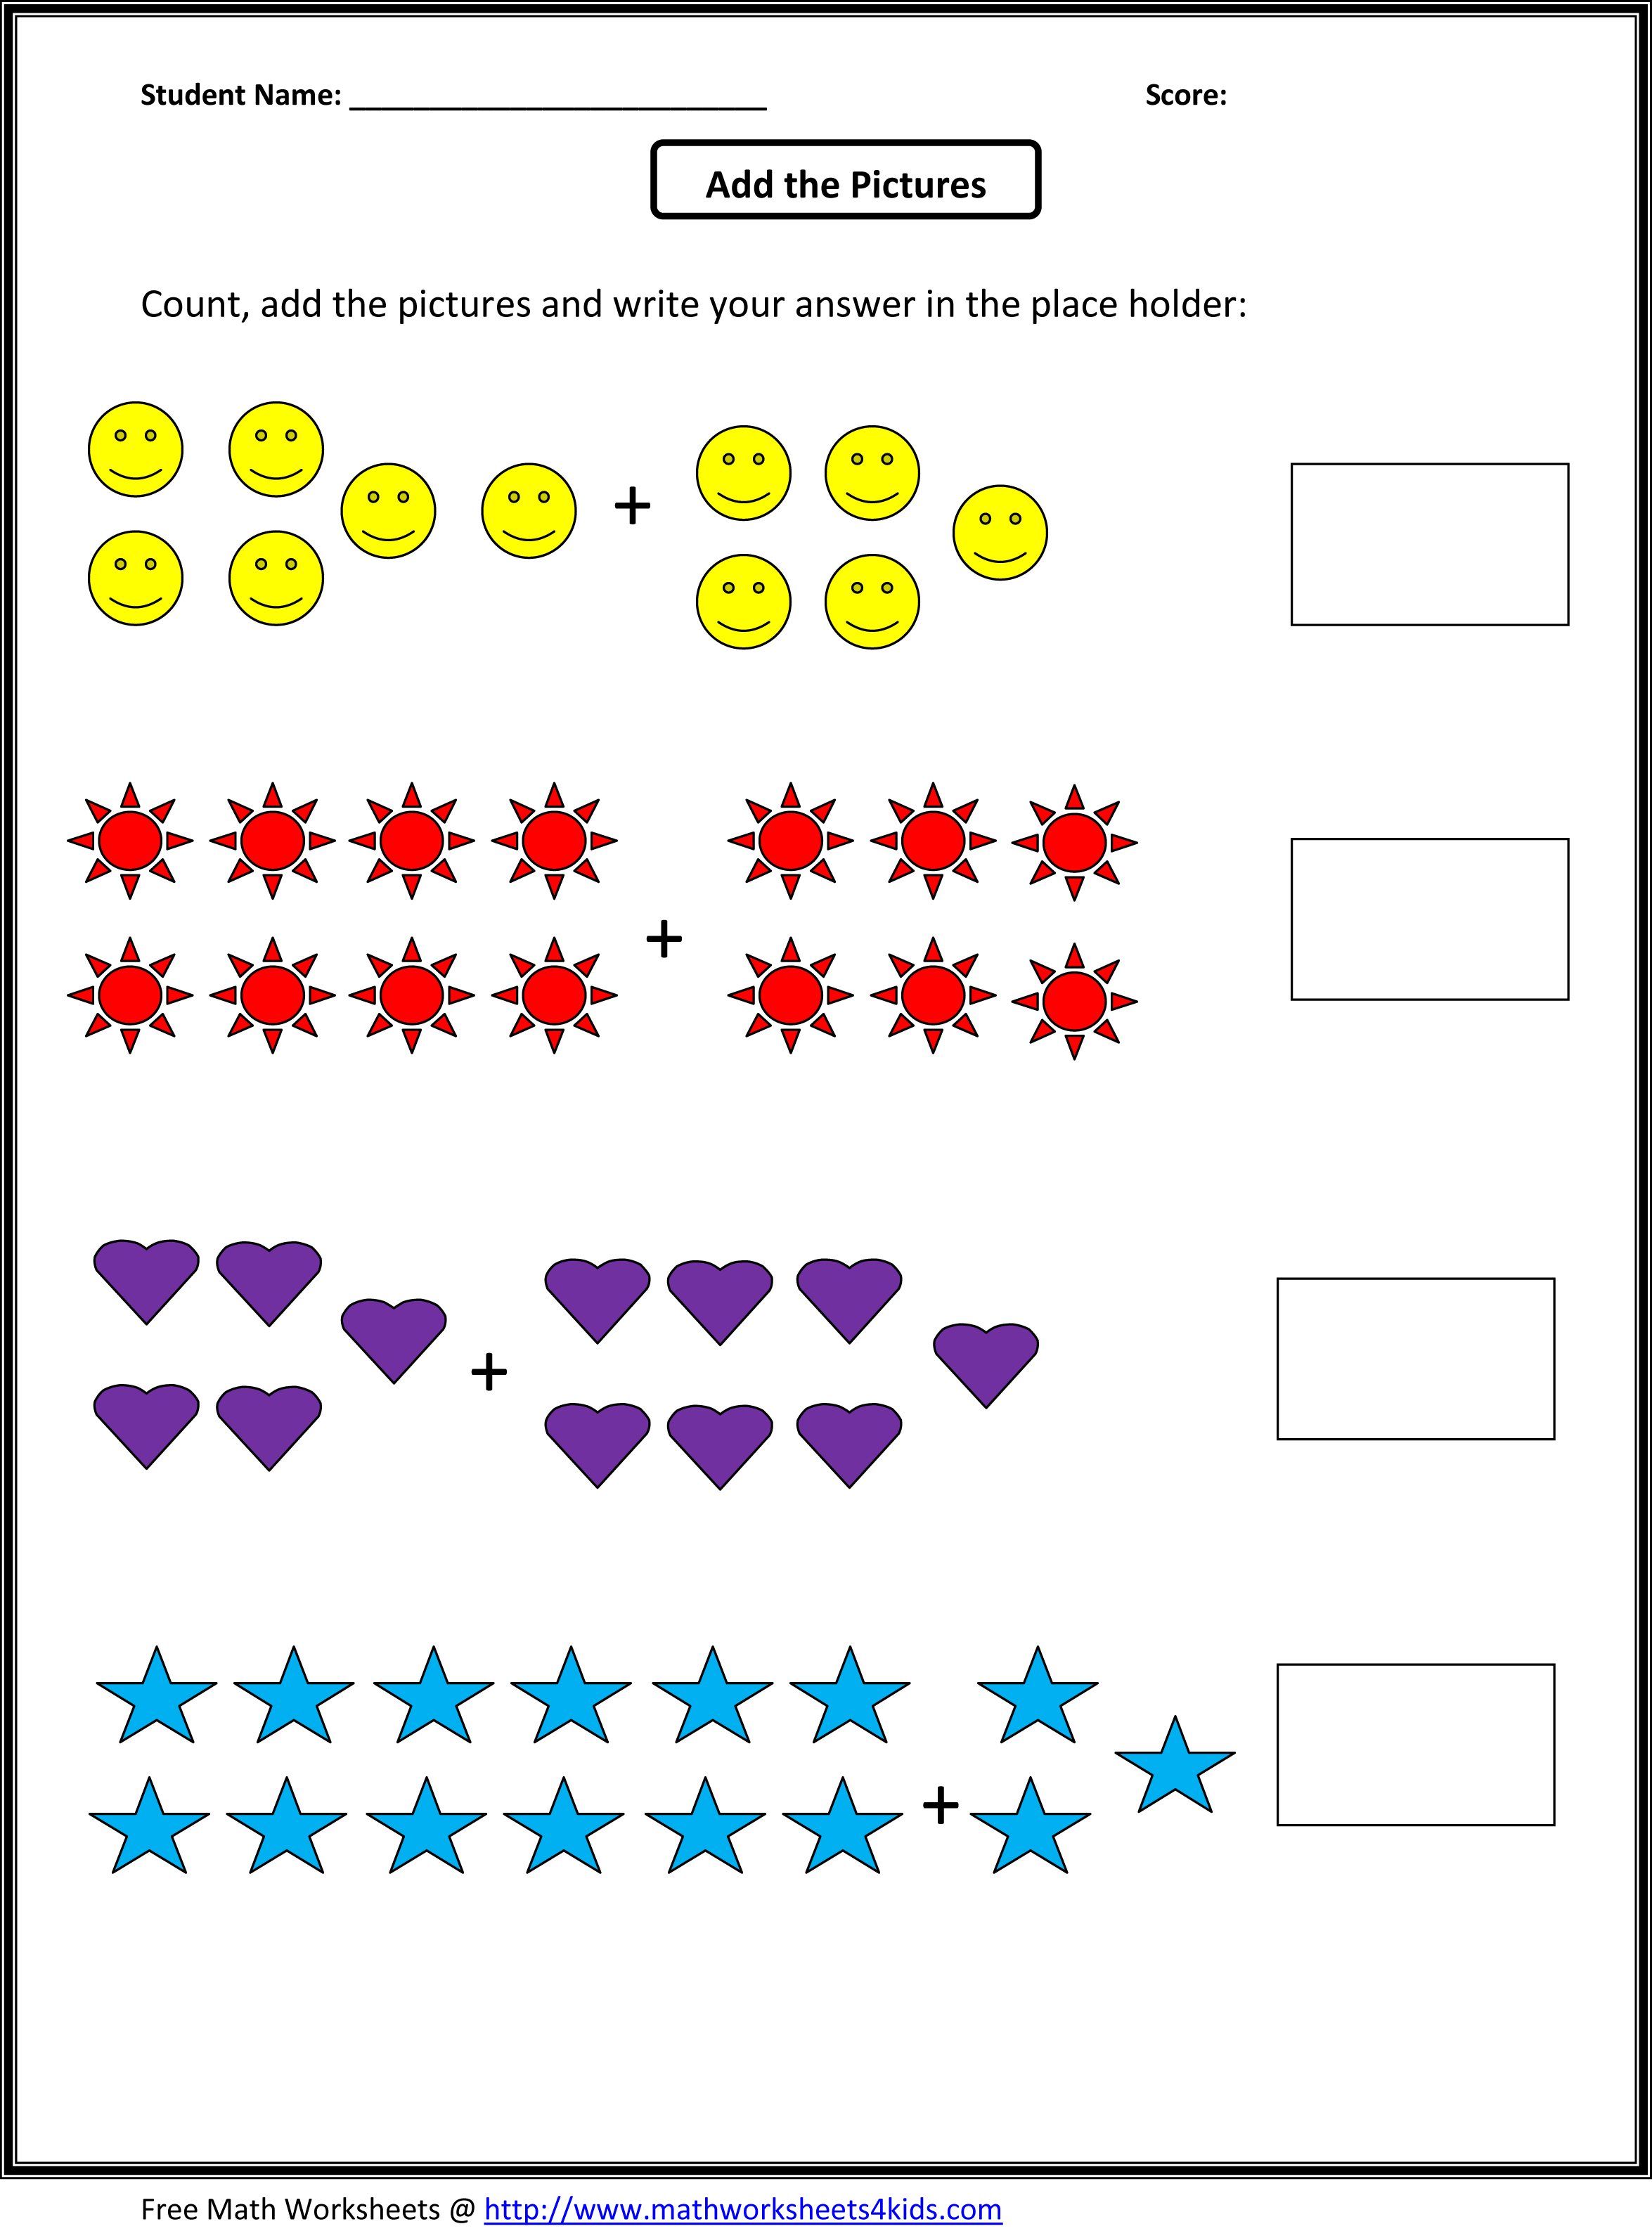 Weirdmailus  Pleasing Grade  Maths Worksheet  Reocurent With Remarkable Math Worksheets For St Grade Free  Reocurent With Cool Poetic Device Worksheet Also Musical Instrument Worksheet In Addition Dictionary Skill Worksheets And Fairytale Worksheets As Well As Animals And Their Food Worksheet Additionally Whmis Worksheets From Reocurentcom With Weirdmailus  Remarkable Grade  Maths Worksheet  Reocurent With Cool Math Worksheets For St Grade Free  Reocurent And Pleasing Poetic Device Worksheet Also Musical Instrument Worksheet In Addition Dictionary Skill Worksheets From Reocurentcom